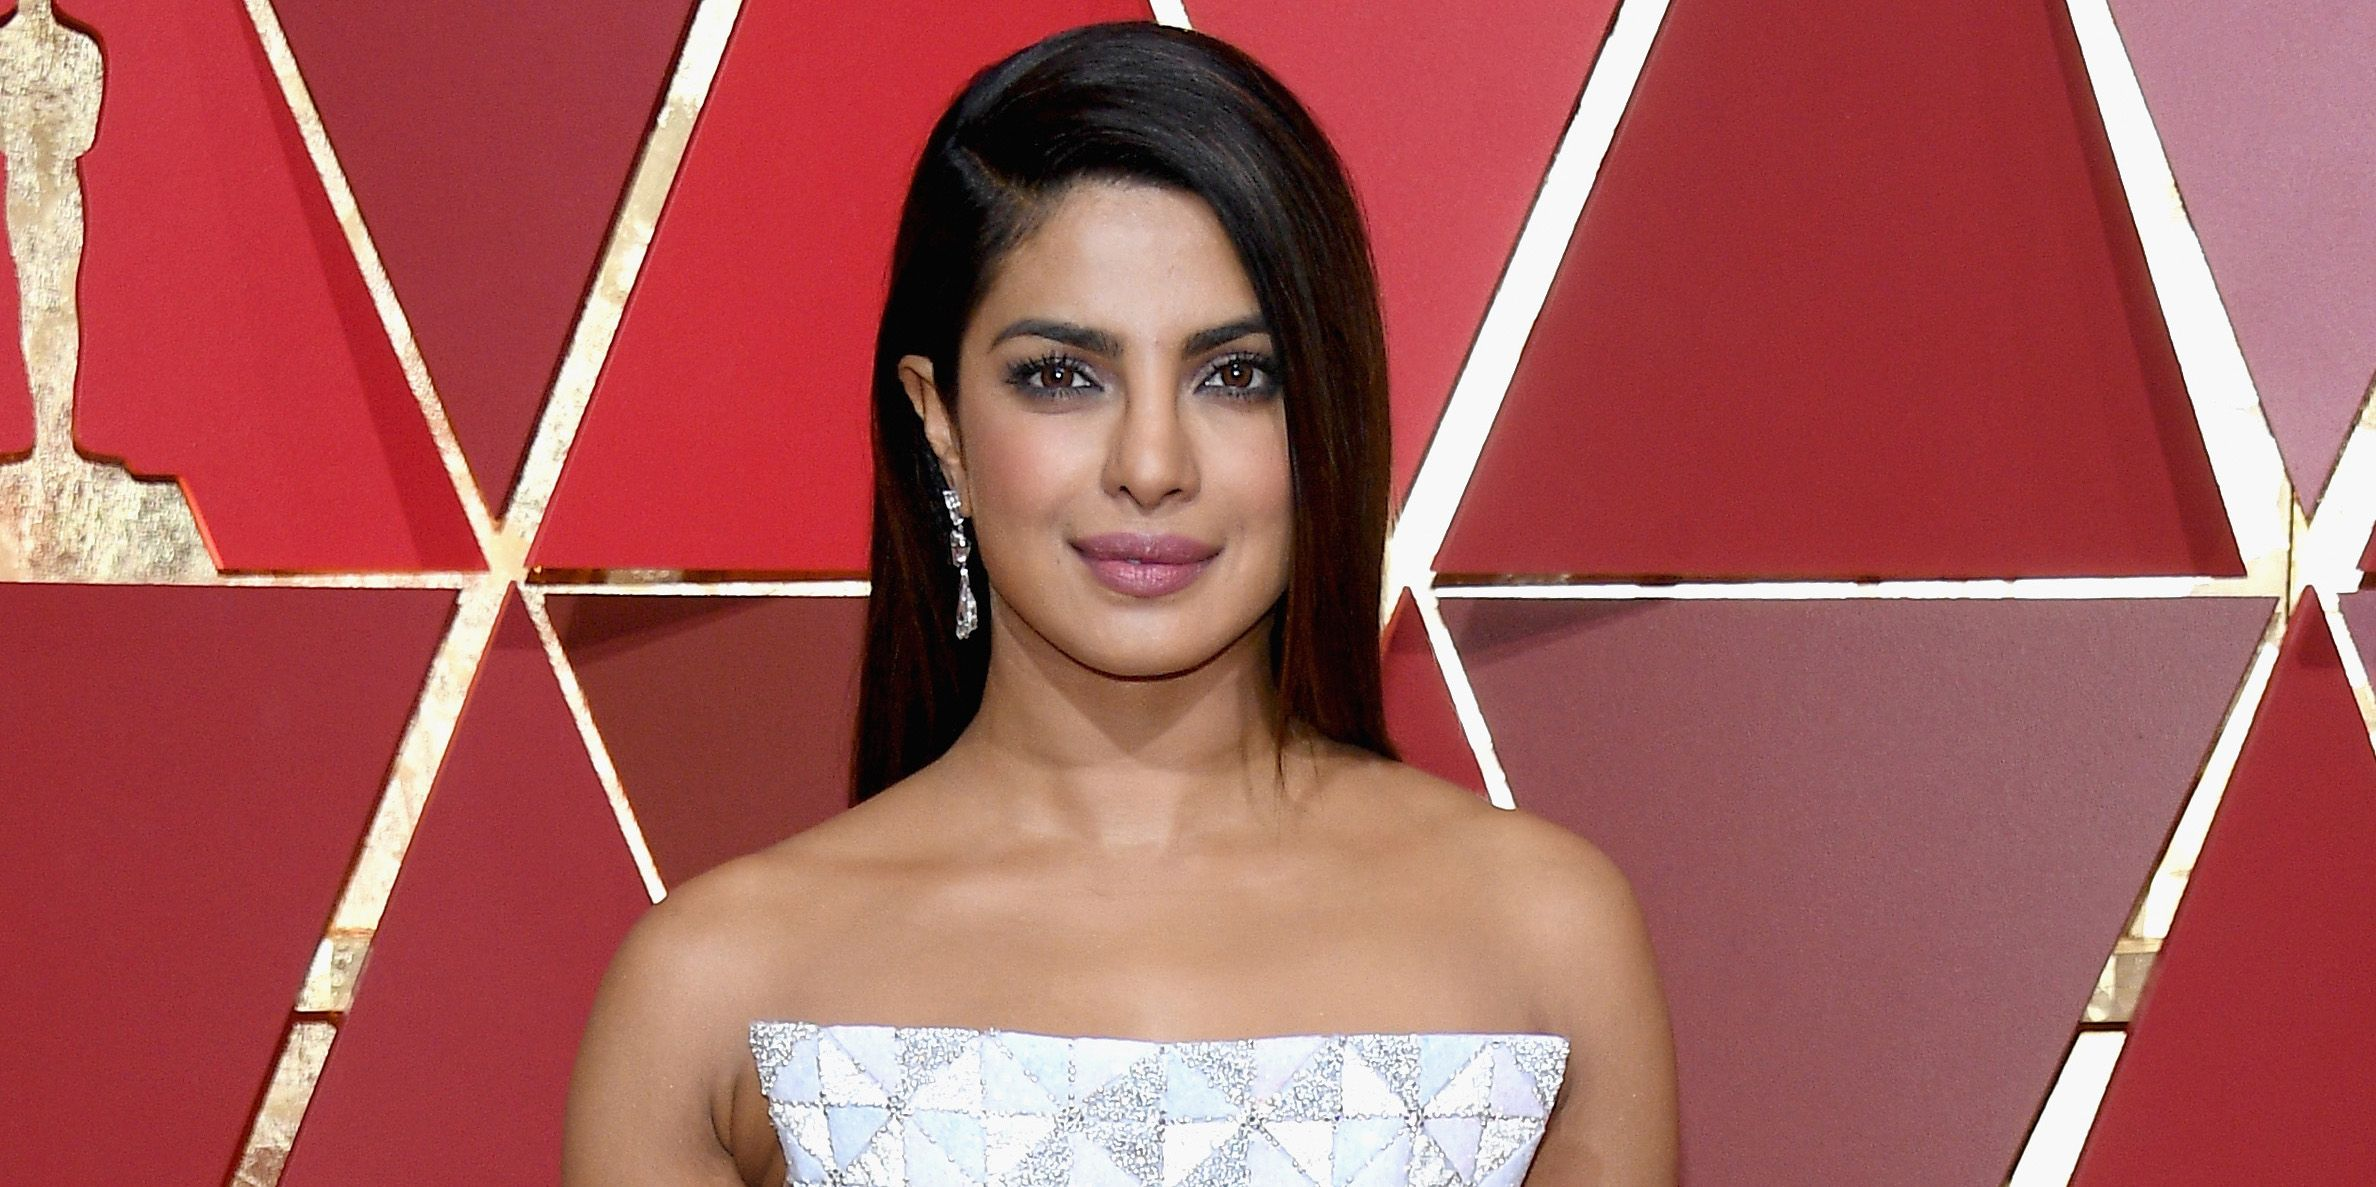 Discussion on this topic: Priyanka Chopra Opens Up About Friend Meghan , priyanka-chopra-opens-up-about-friend-meghan/